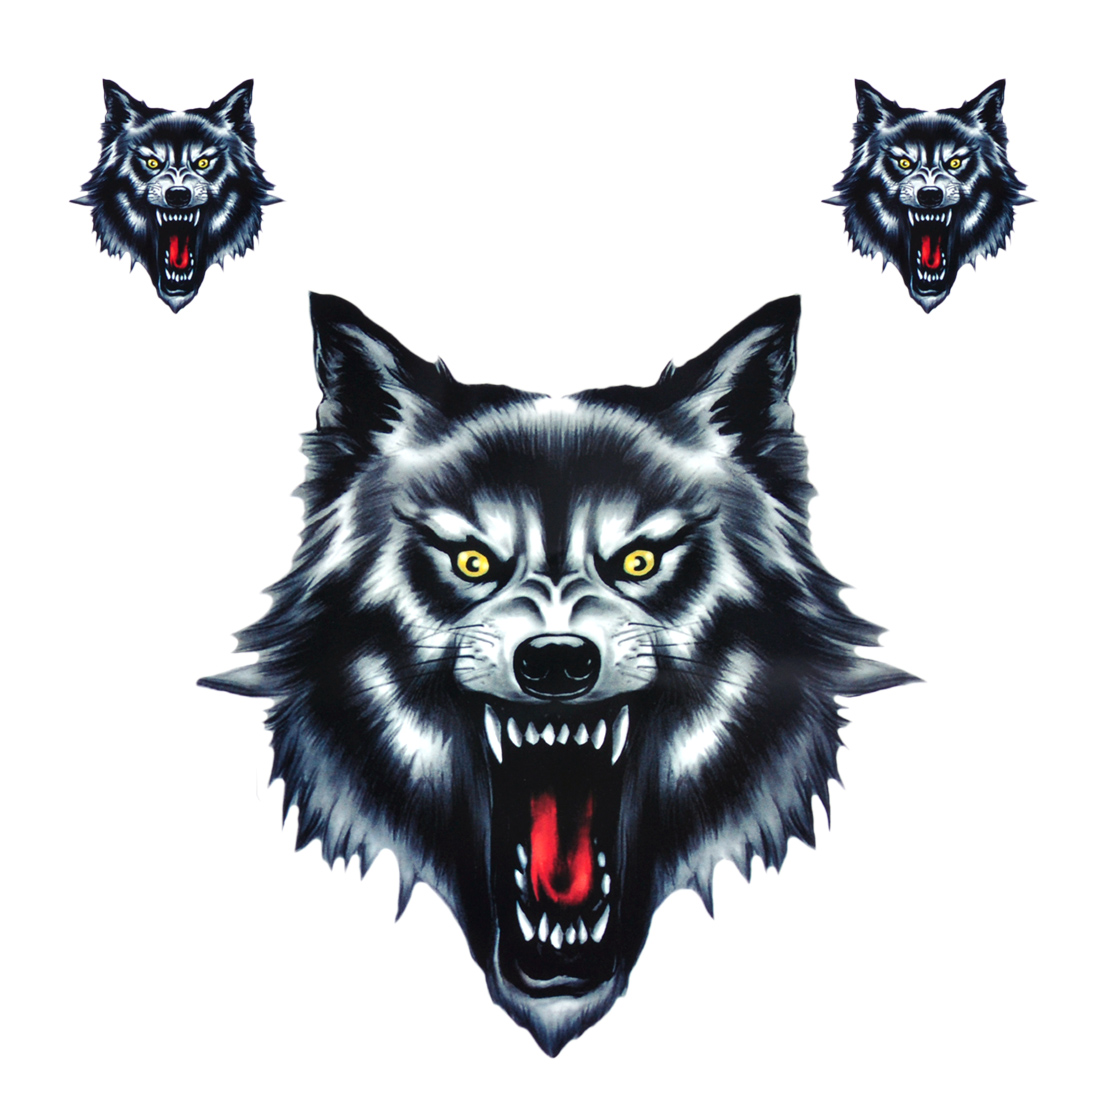 DWCX Vinyl Wolf Head Decals Waterproof Funny Self-adhesive Sticker for Motorcycle Motorbike Car Door Stickers Truck Helmet Decor image